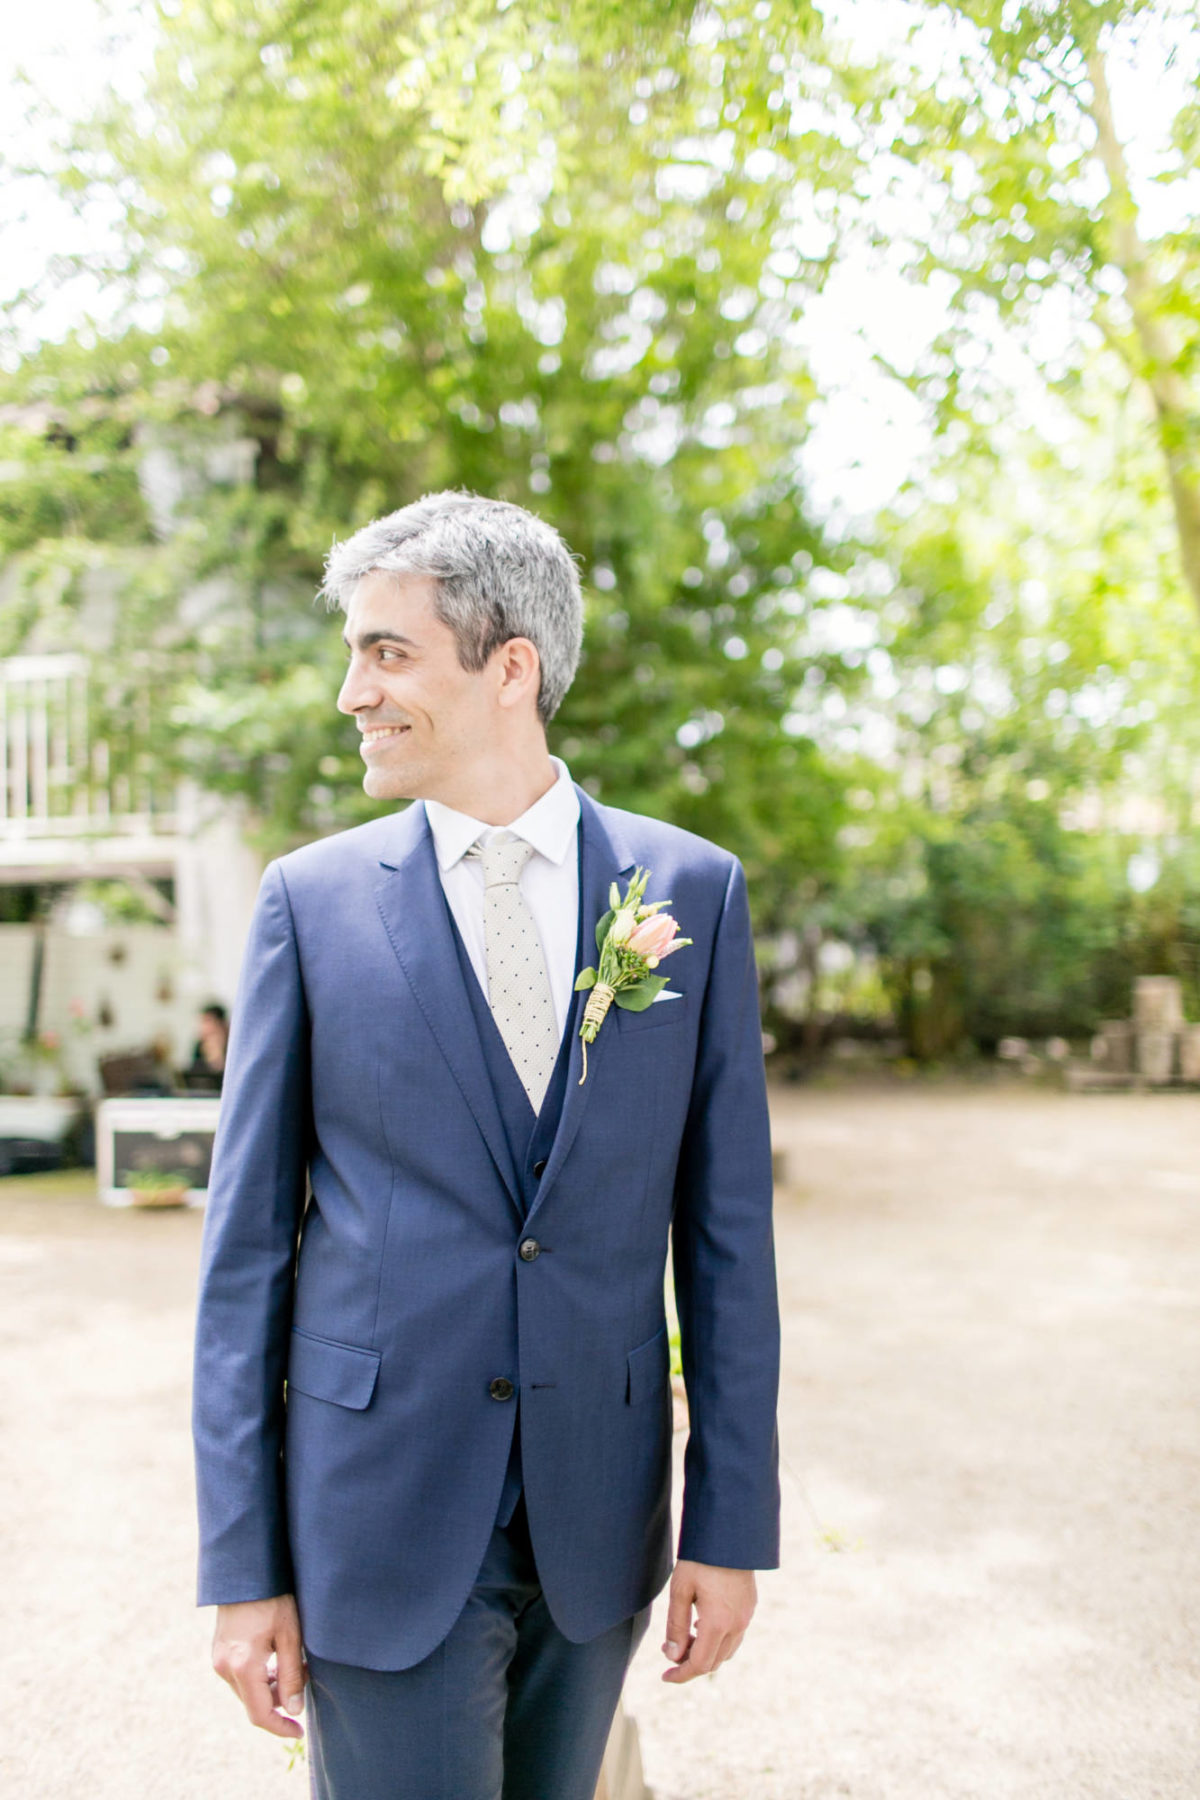 Picture of a groom at the wedding venue